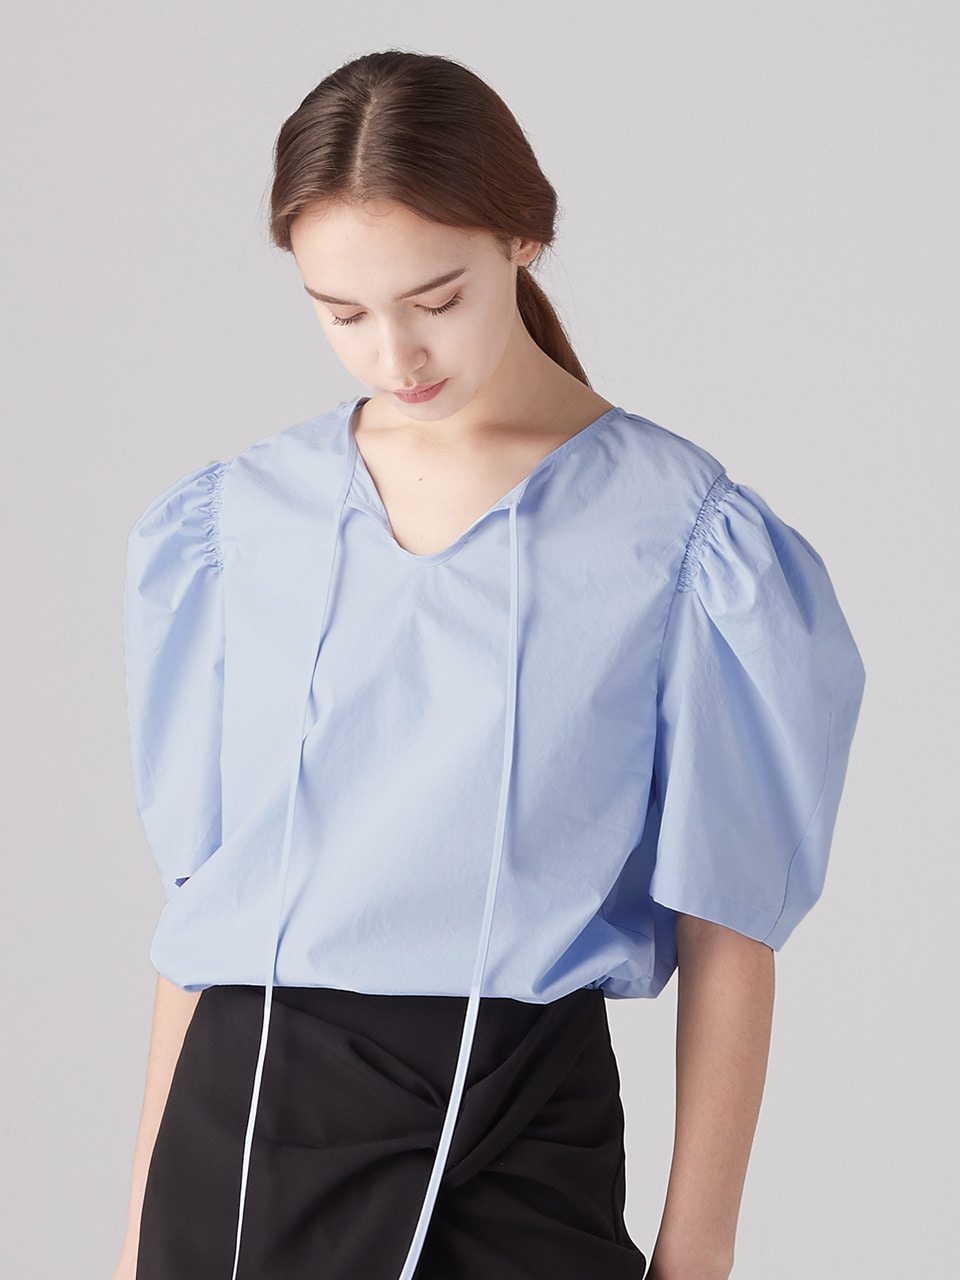 [6/9예약배송]Shirring puff blouse - Sky blue